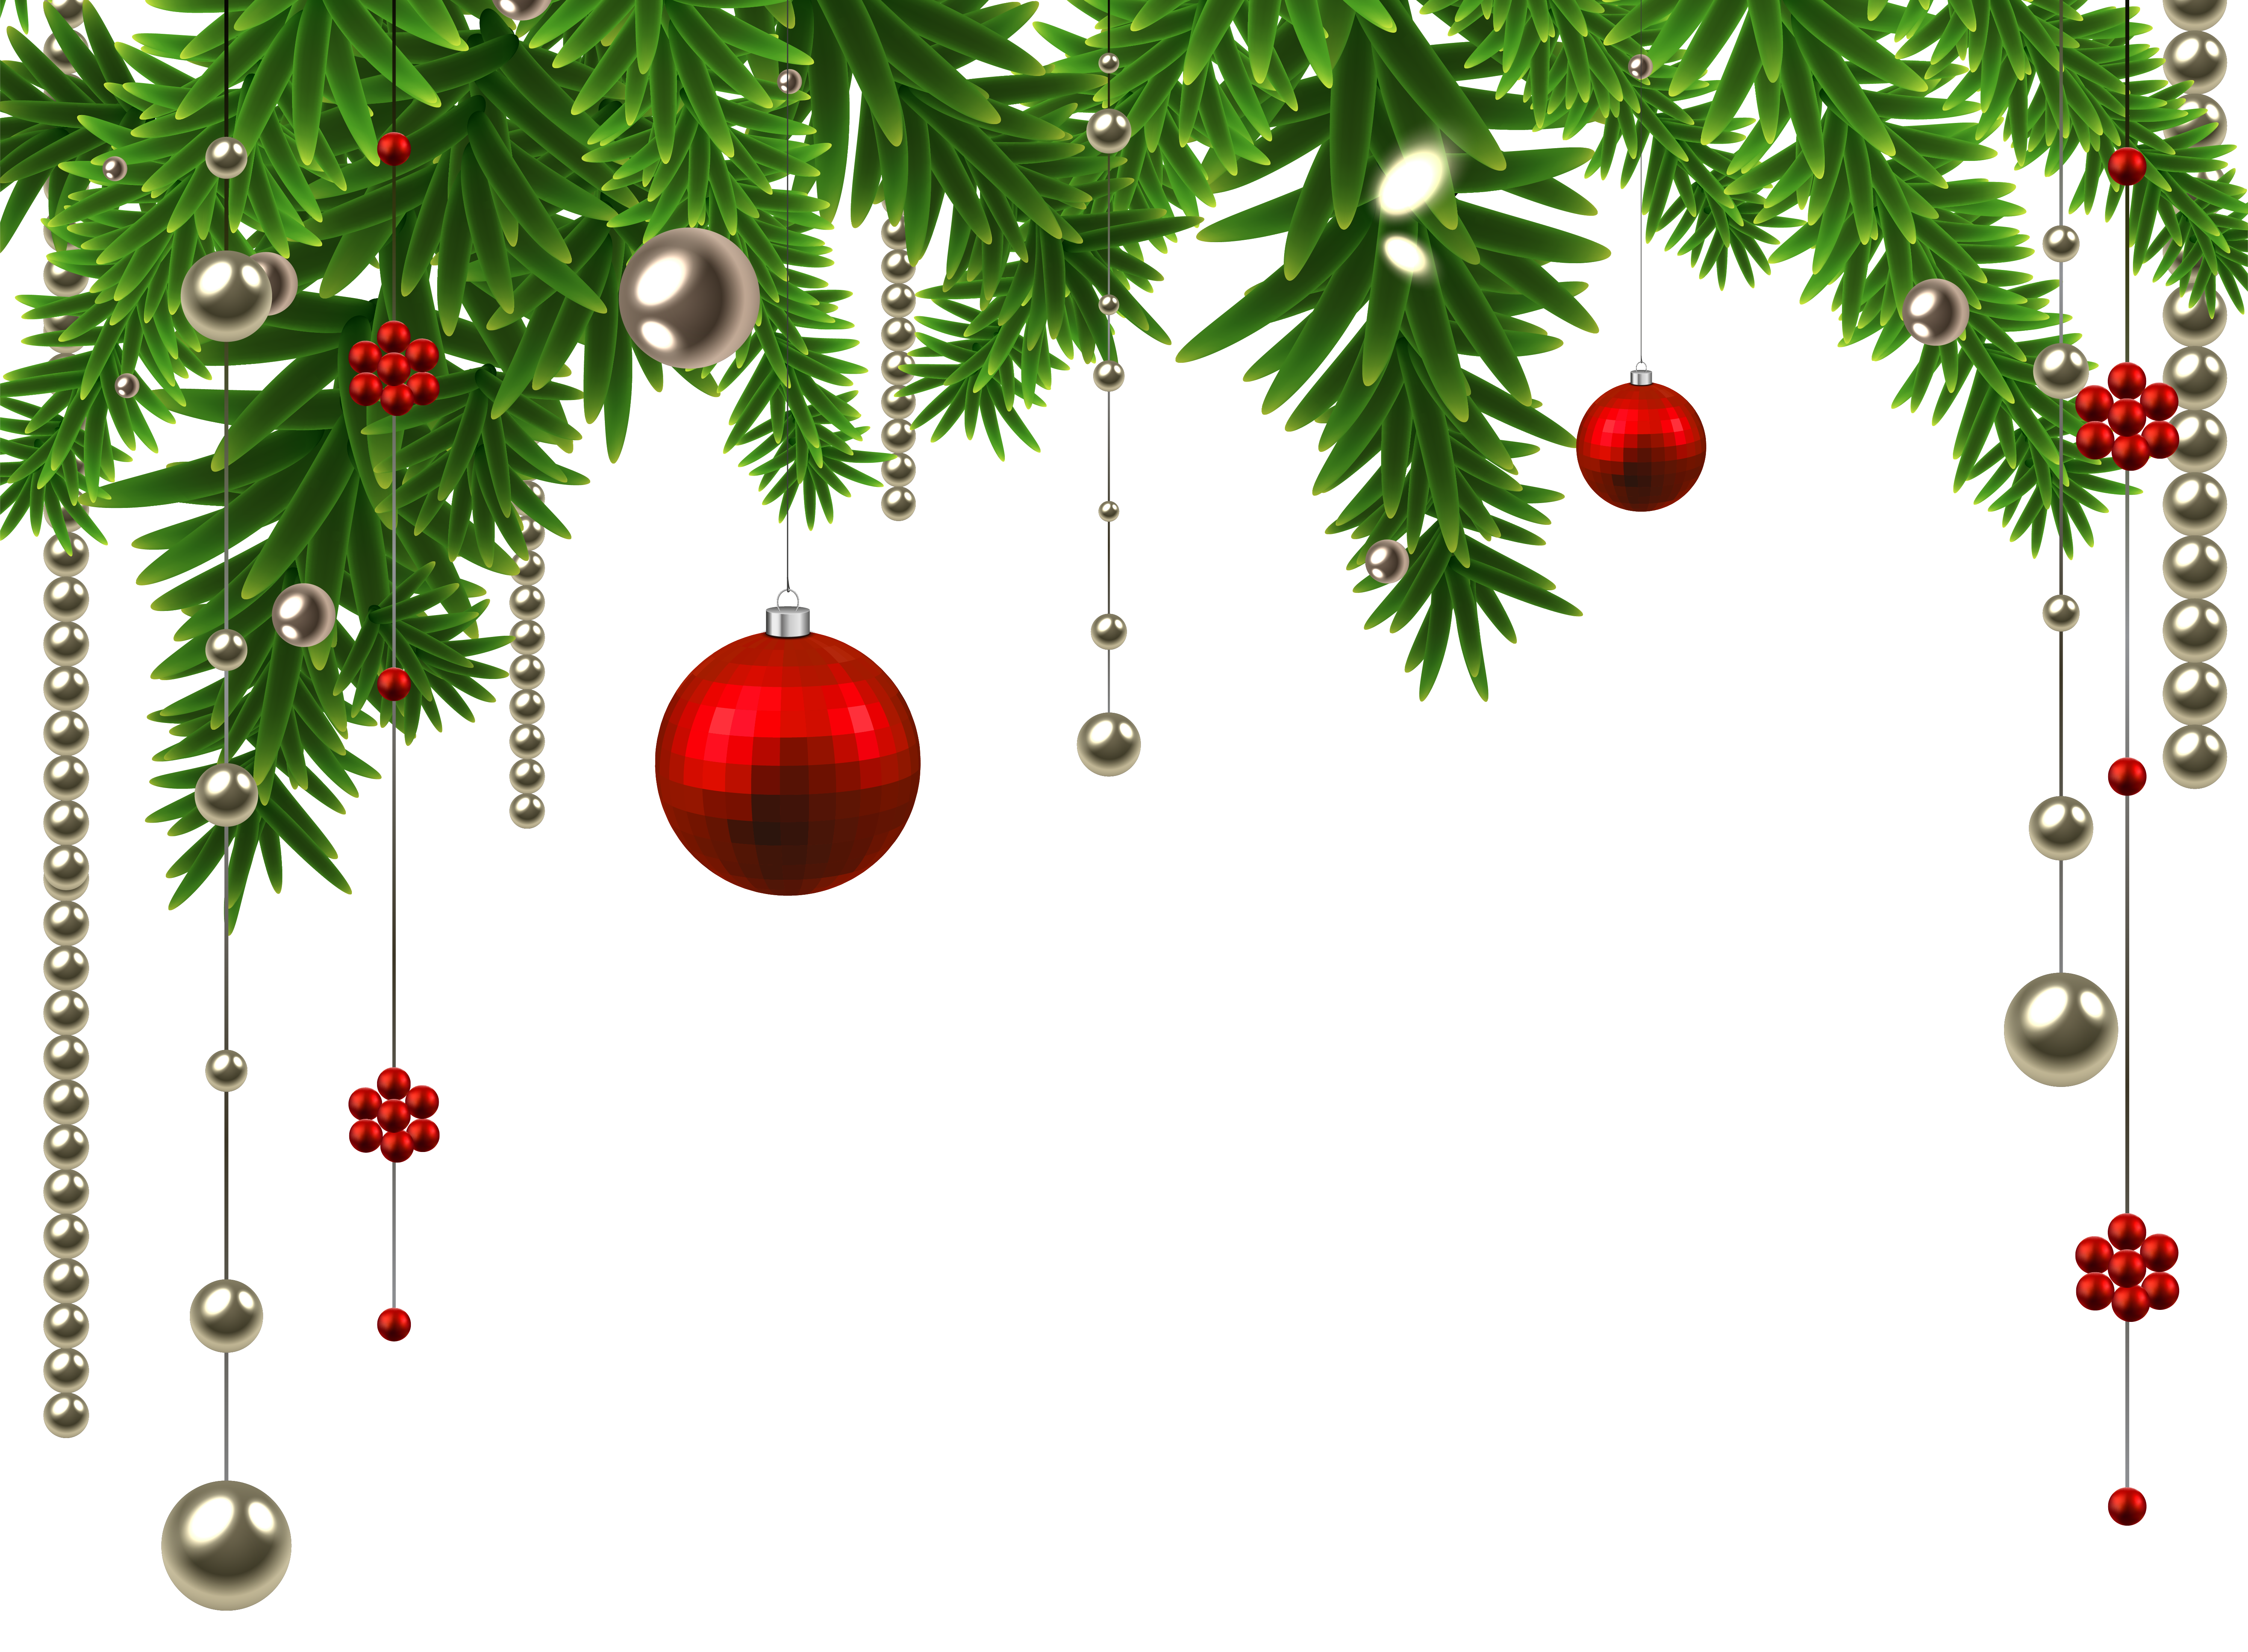 Christmas Hanging Ball Decoration Png Clipart Image Gallery Outdoor ...